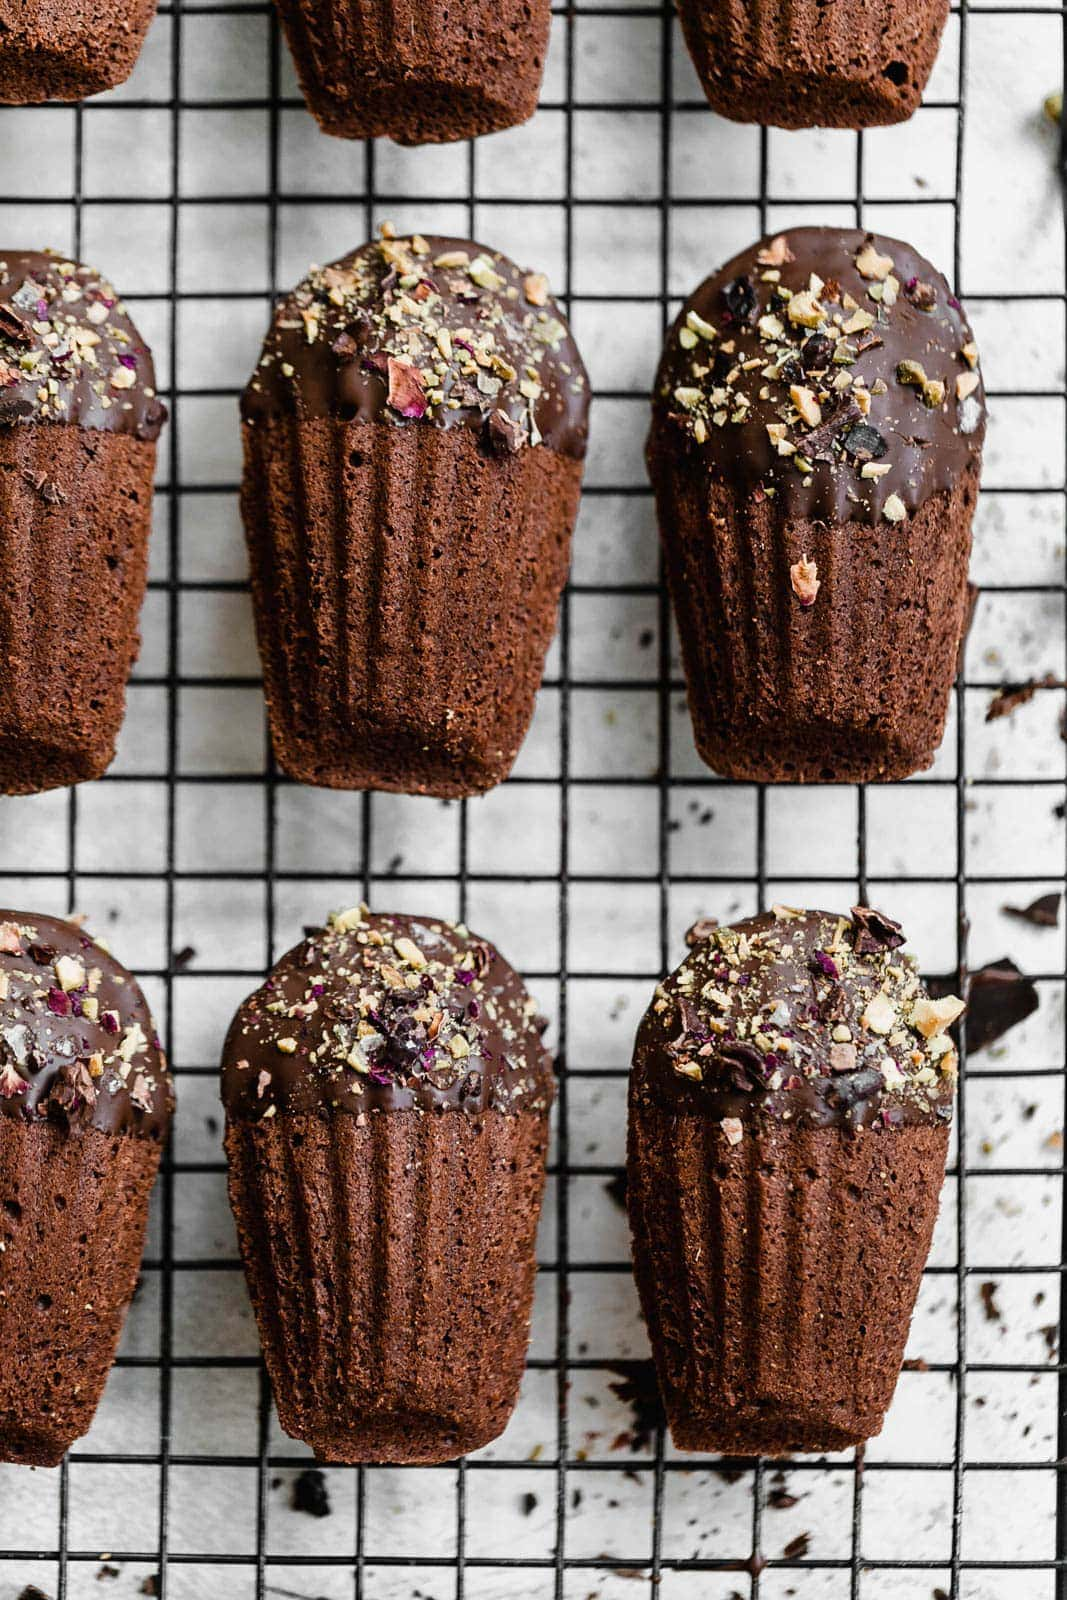 Chocolate-Dipped Chocolate Madeleines on wire rack